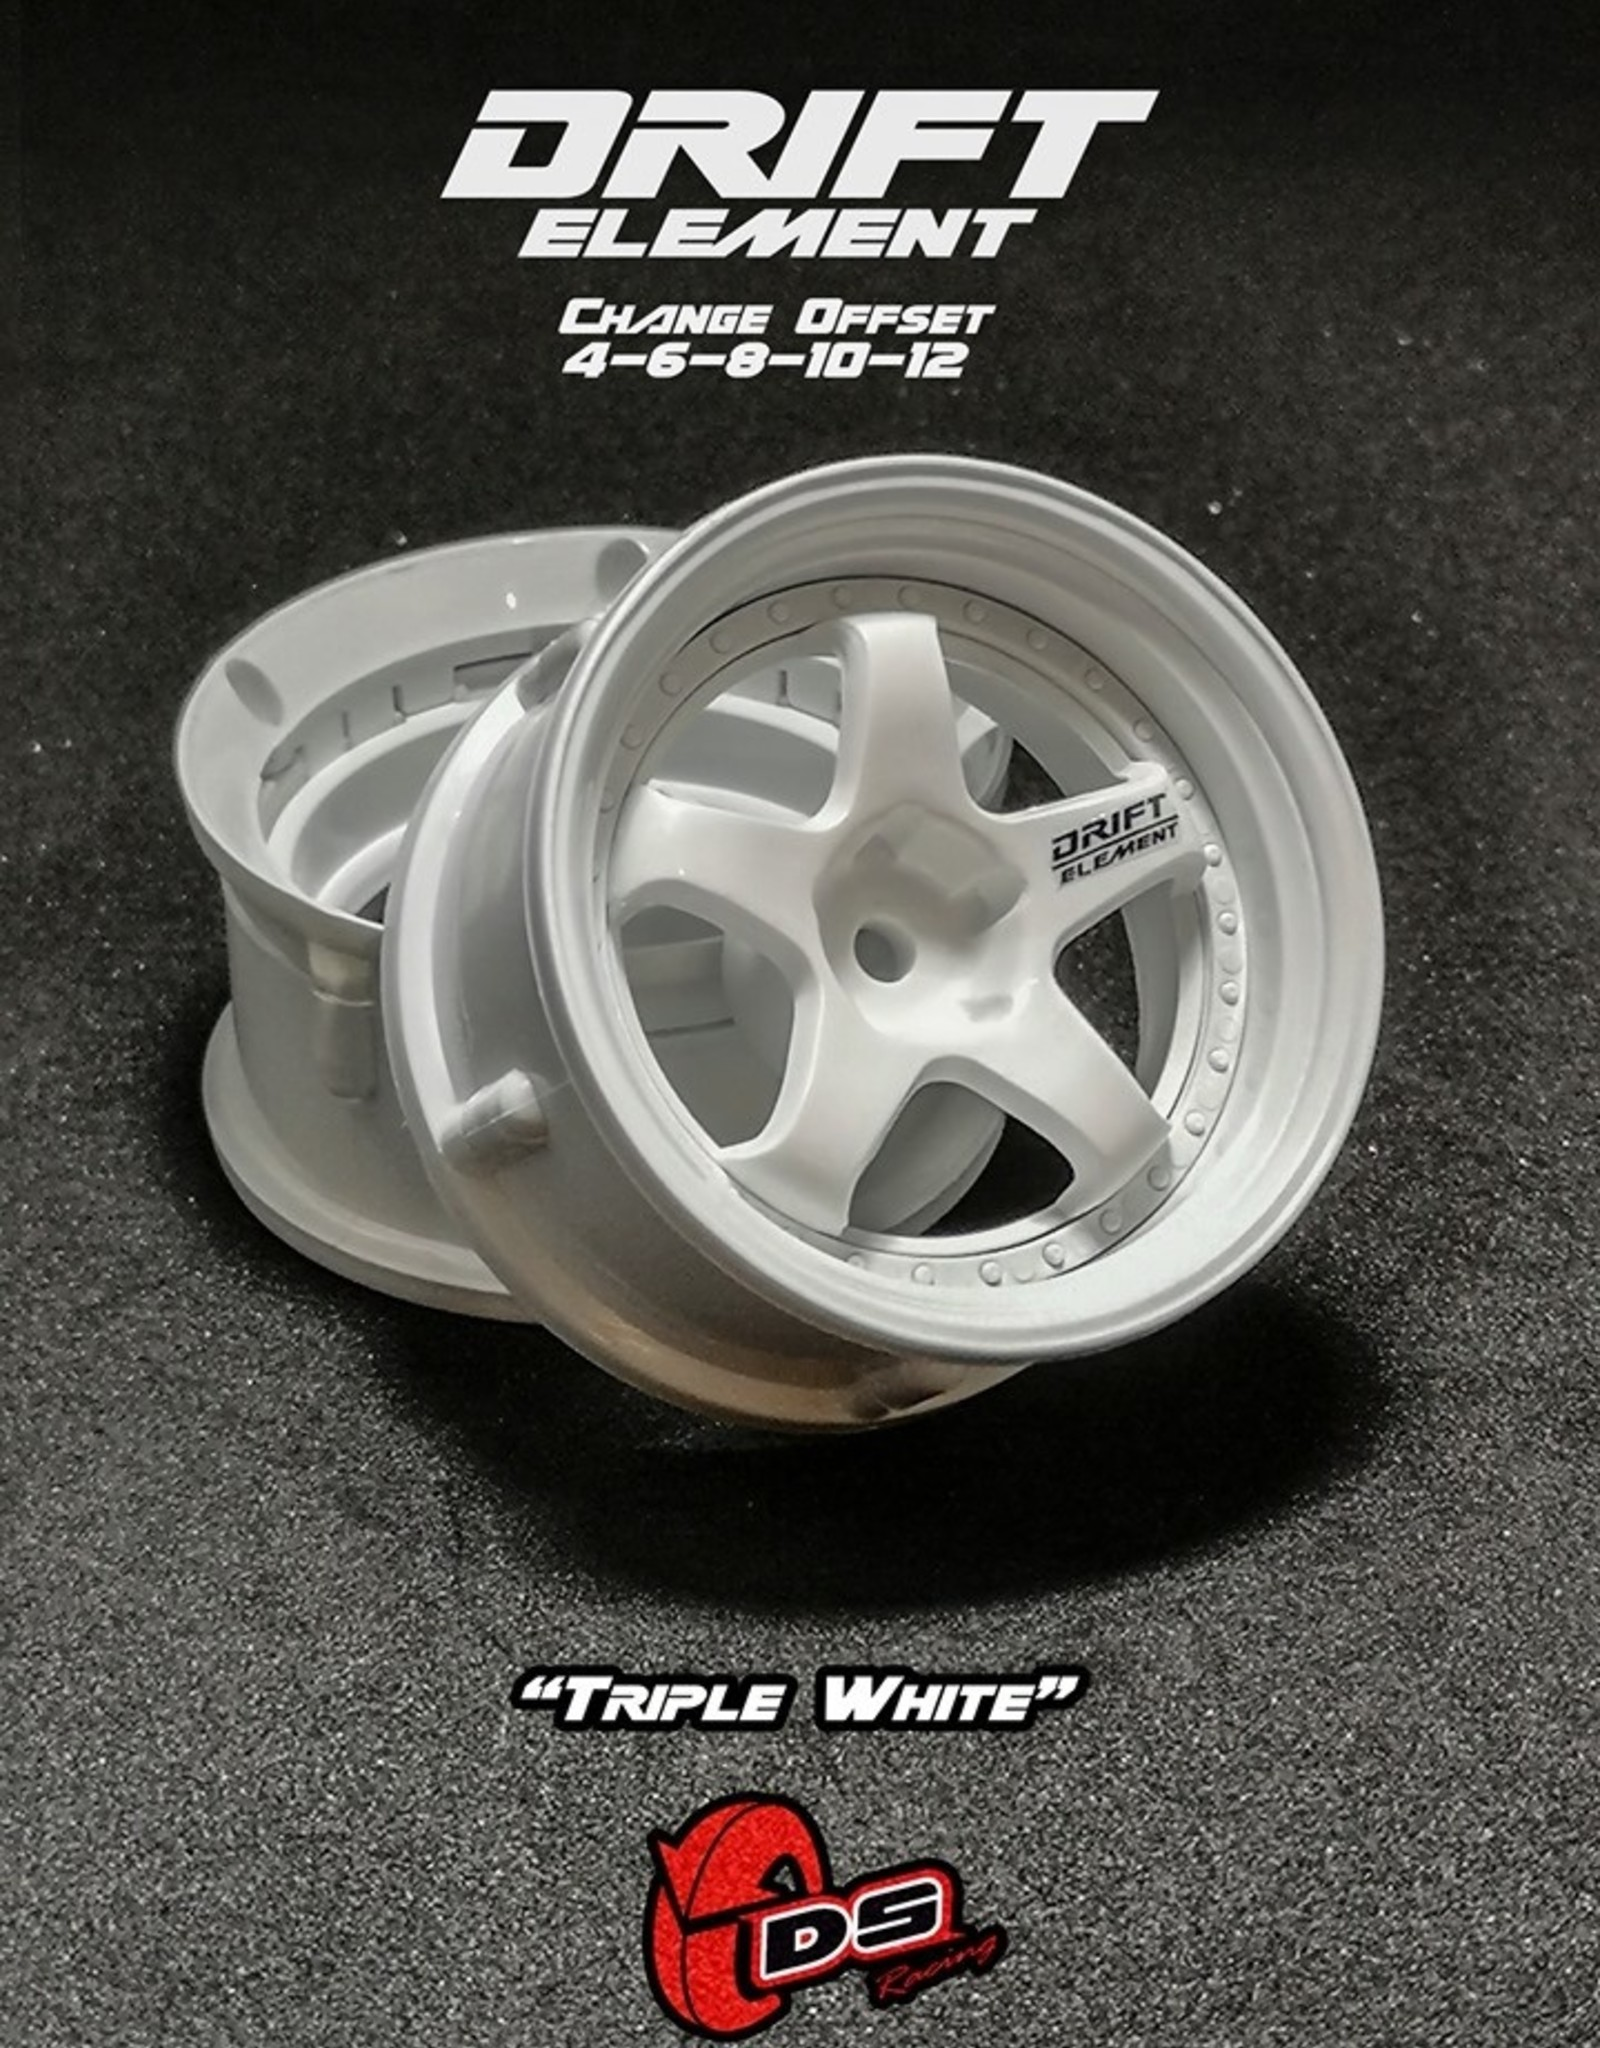 DS Racing Drift Element Adjustable Offset Wheels by DS Racing White/White